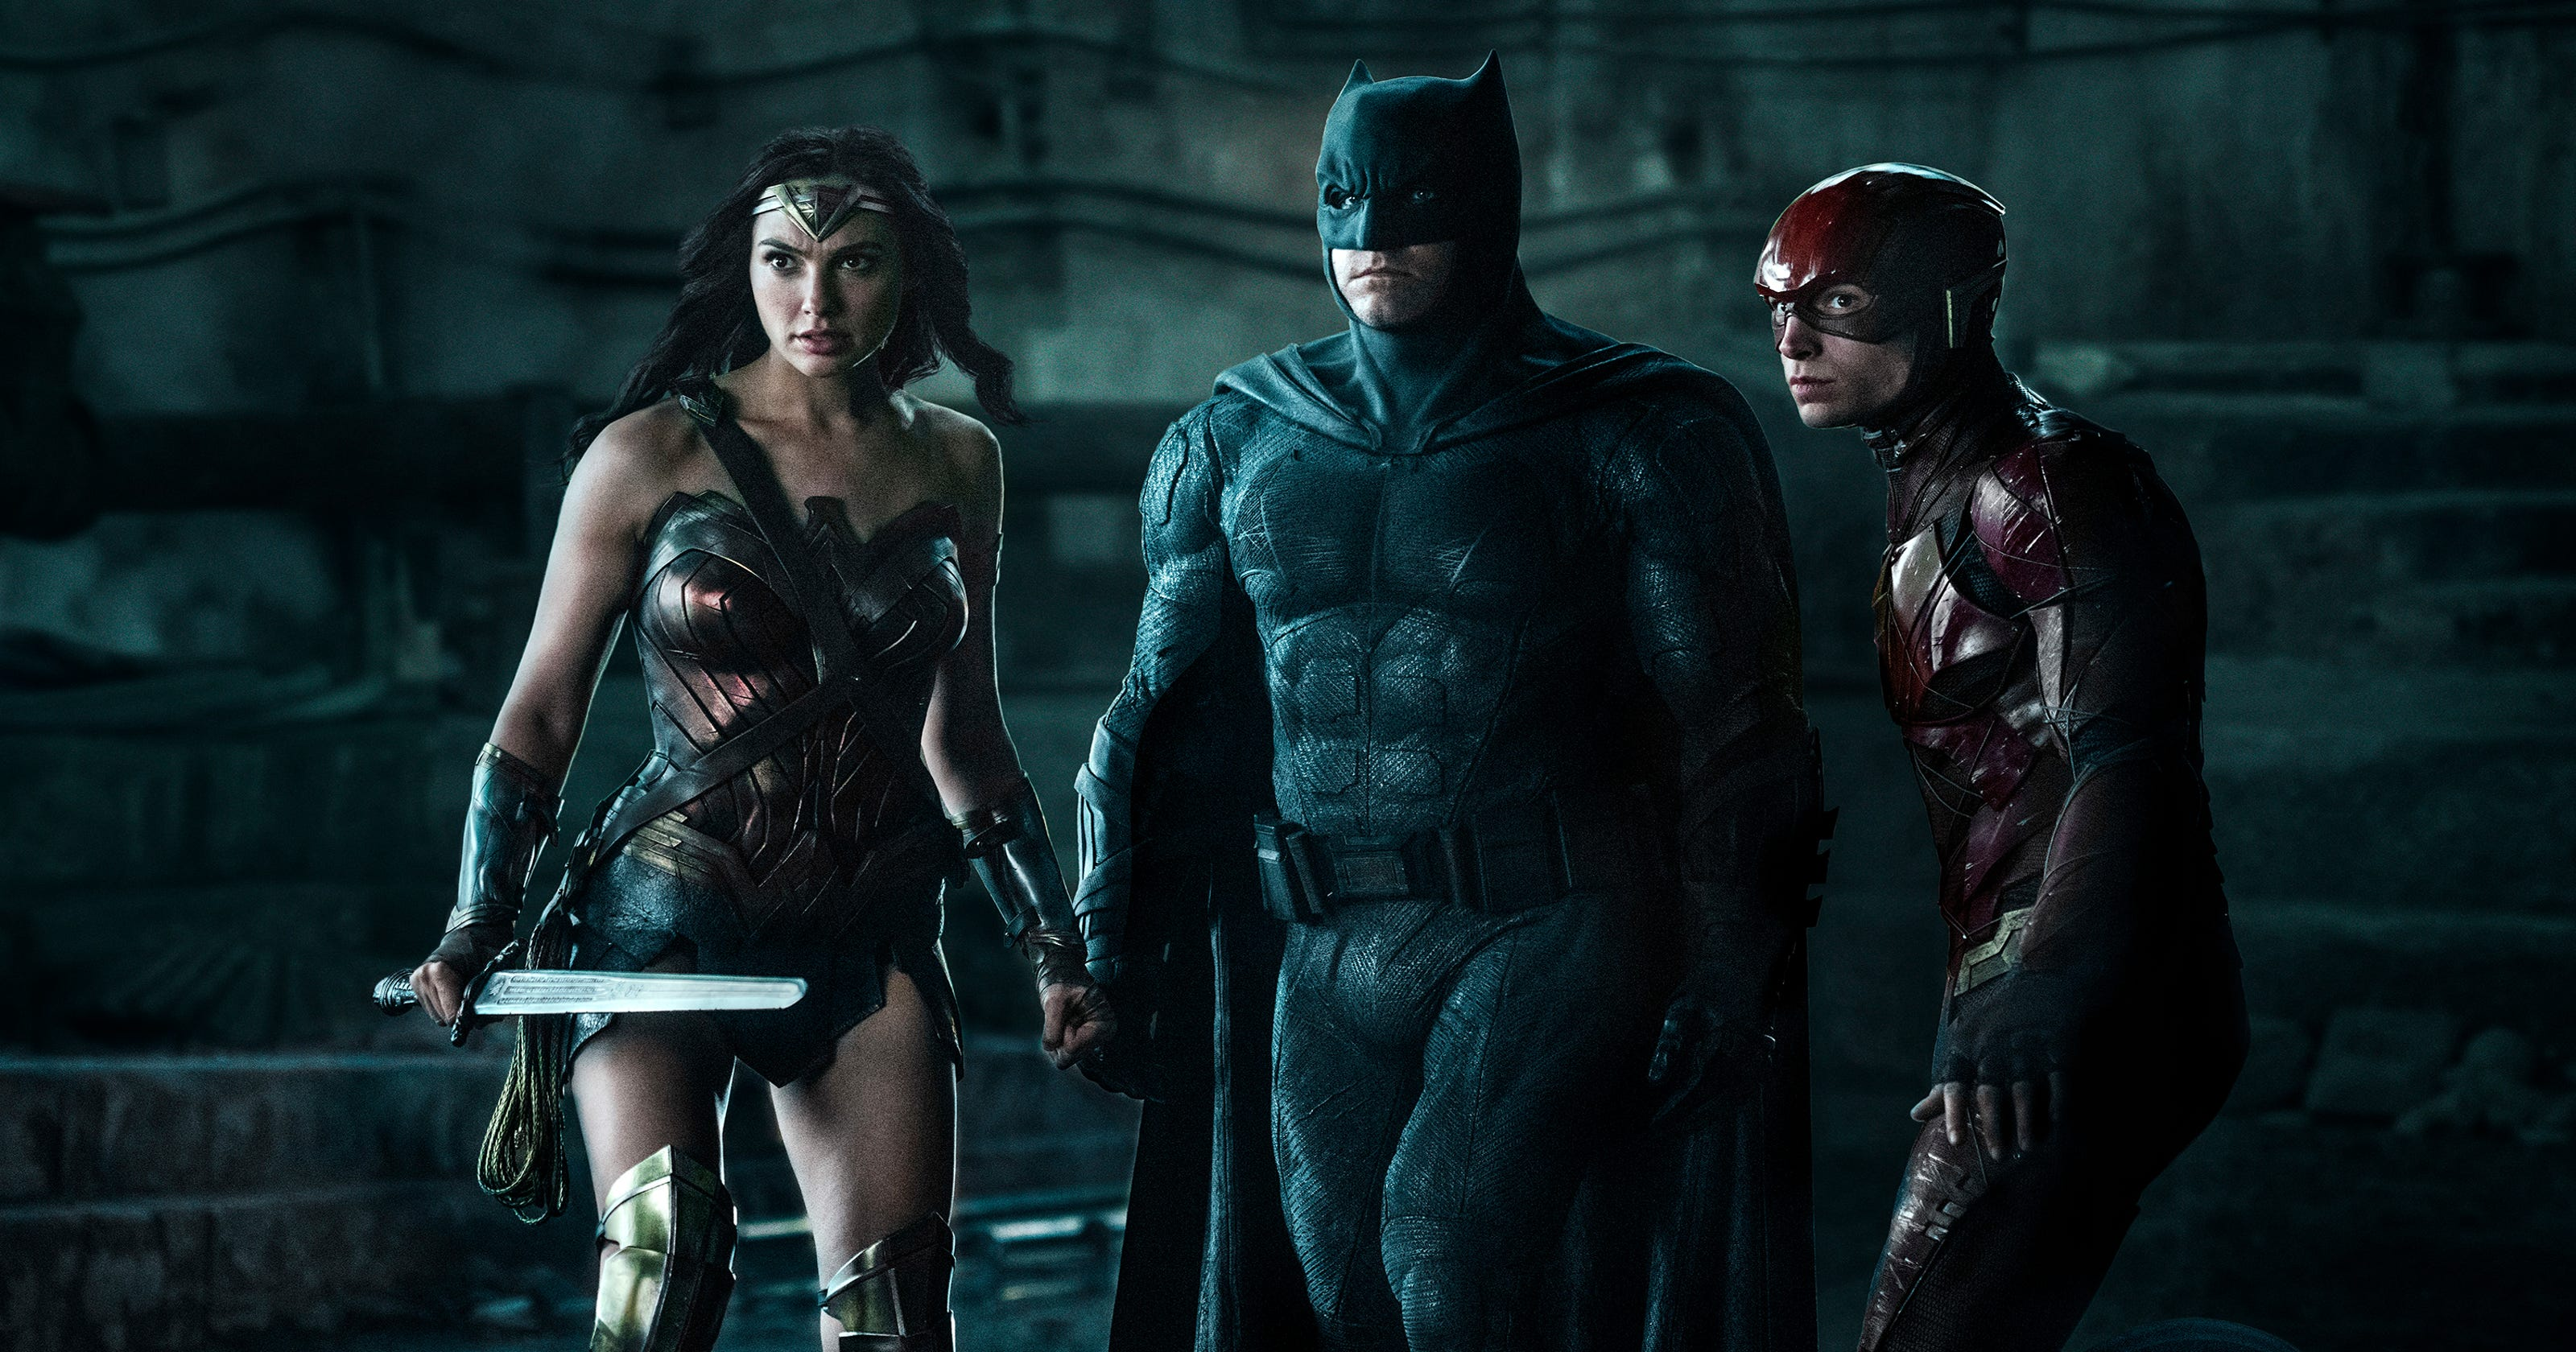 Justice League' review: Fun popcorn flick, too much CGI